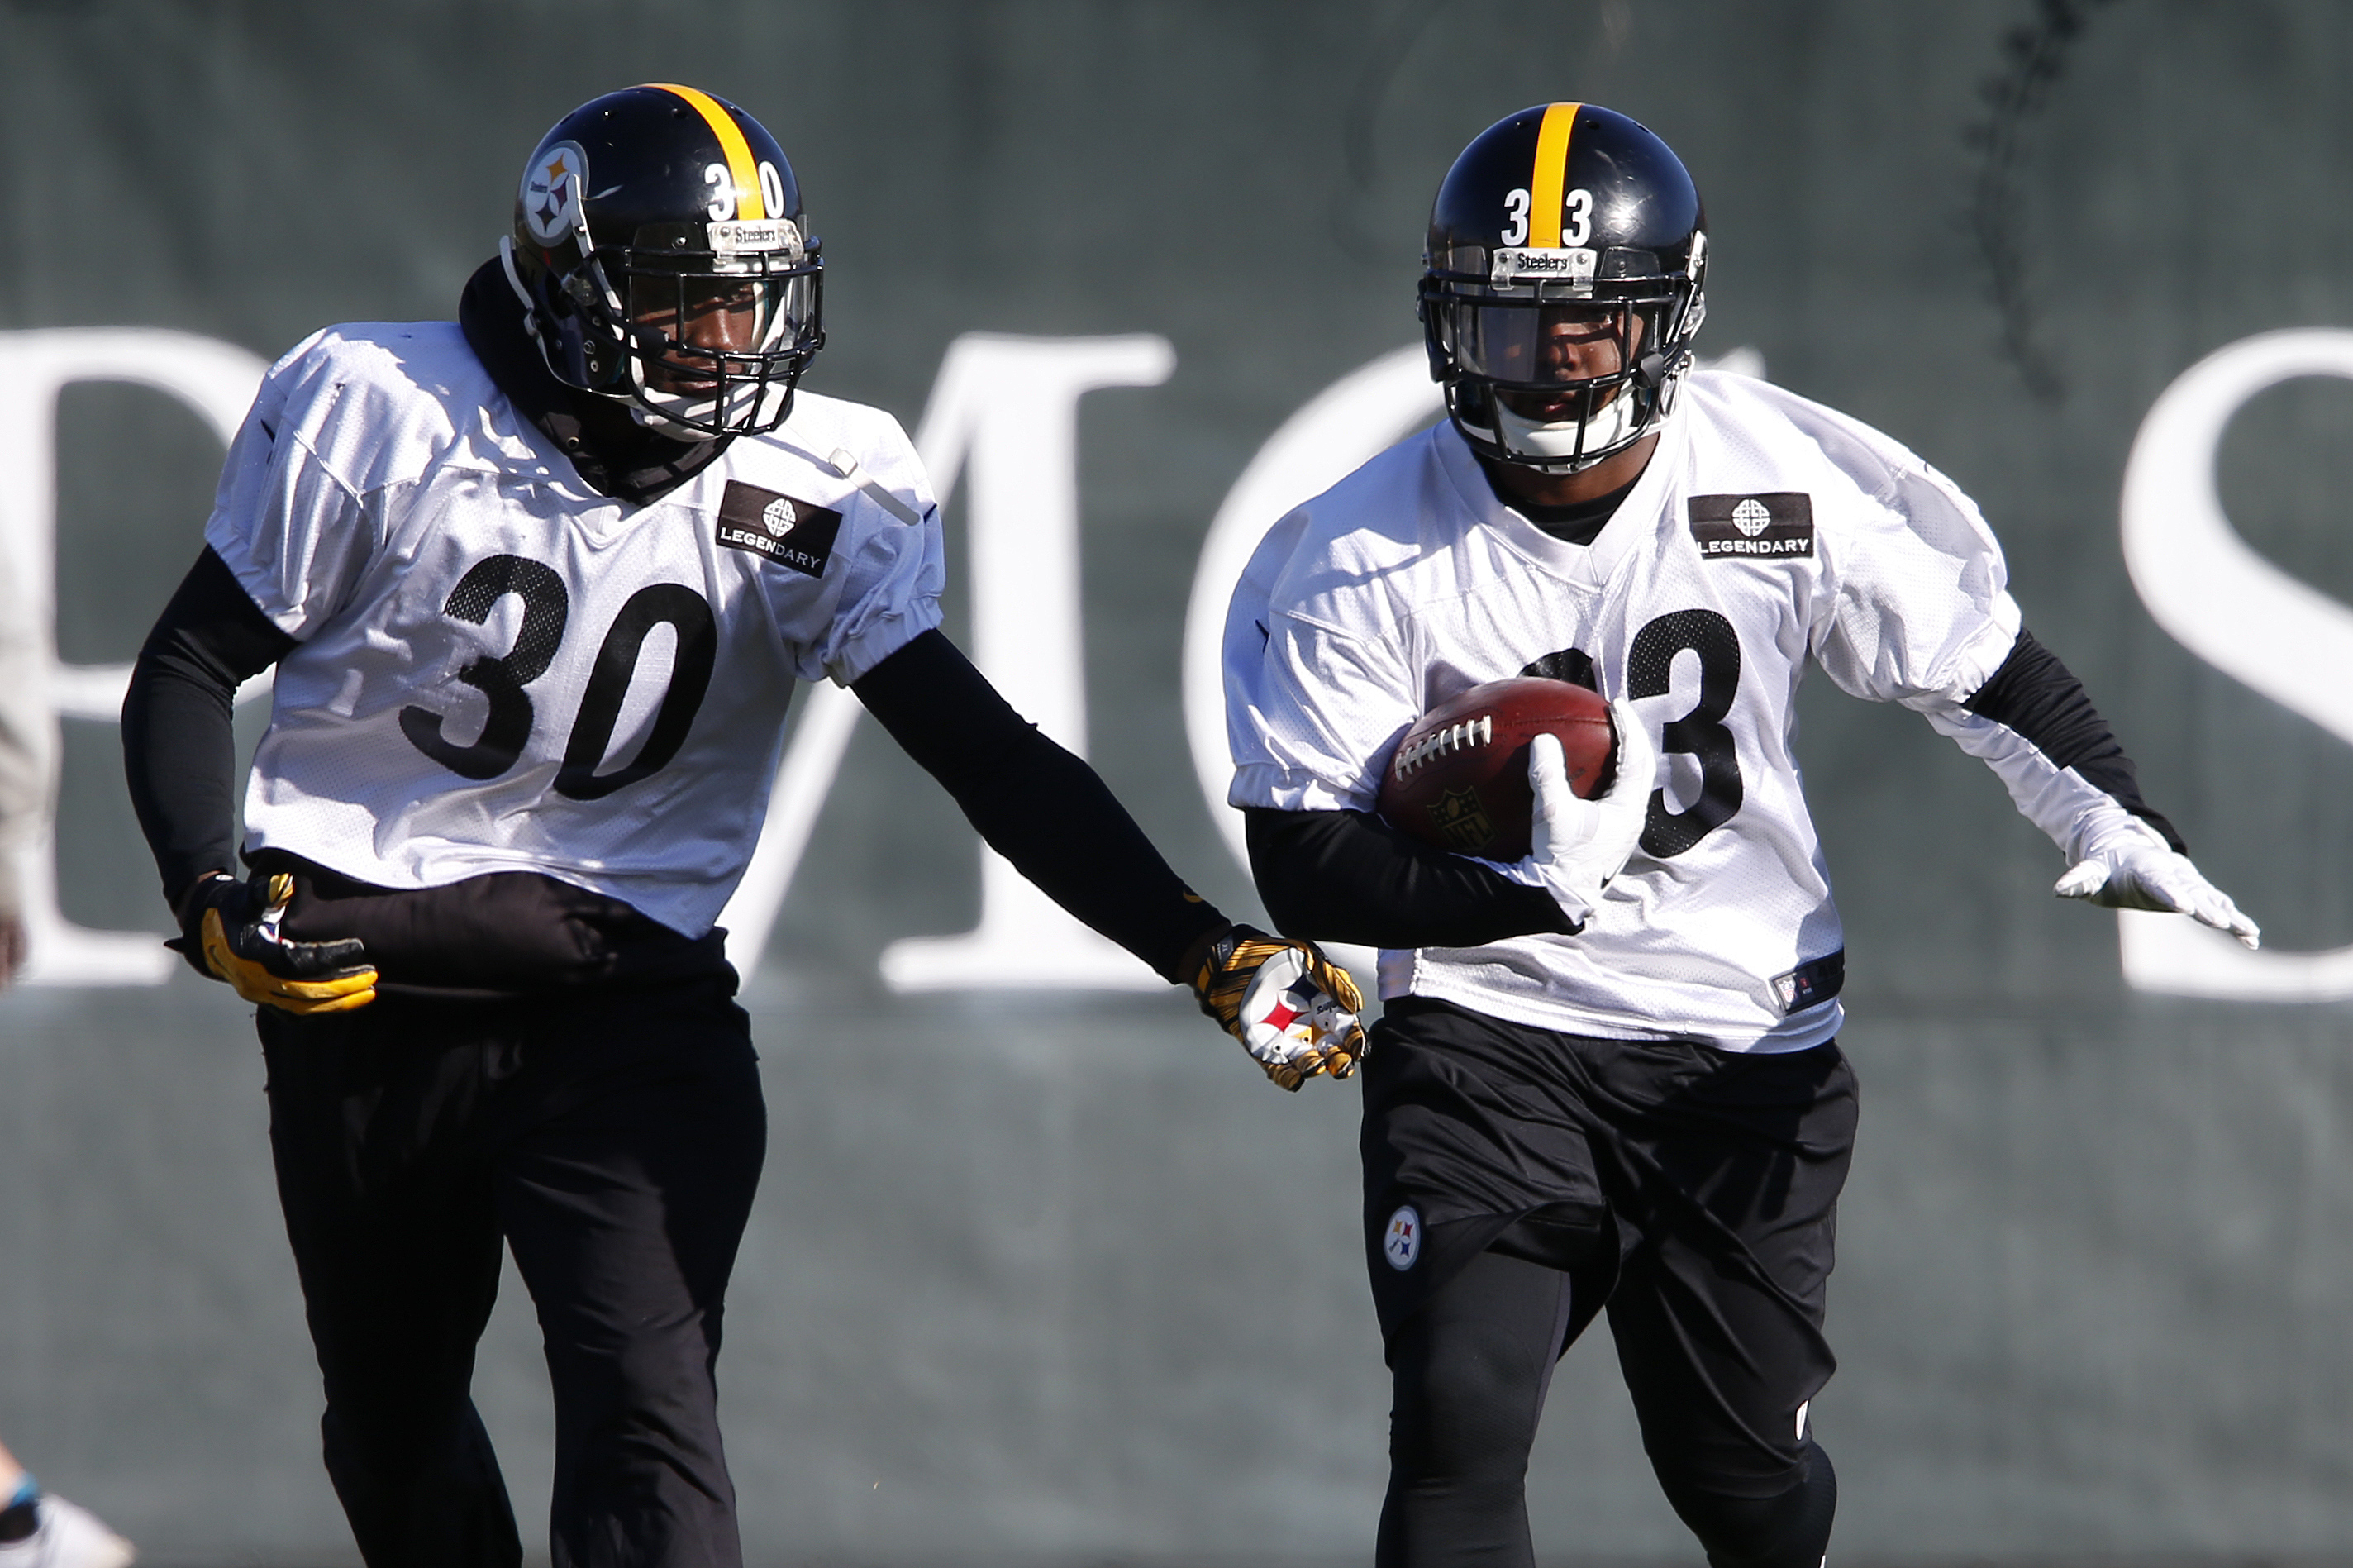 Pittsburgh Steelers running backs Fitzgerald Toussaint (33) and Jordan Todman (30) run a drill during an NFL football practice, in Pittsburgh, Wednesday, Jan. 6, 2016. With starting running back DeAngelo Williams' right foot still hurting, Toussaint and T